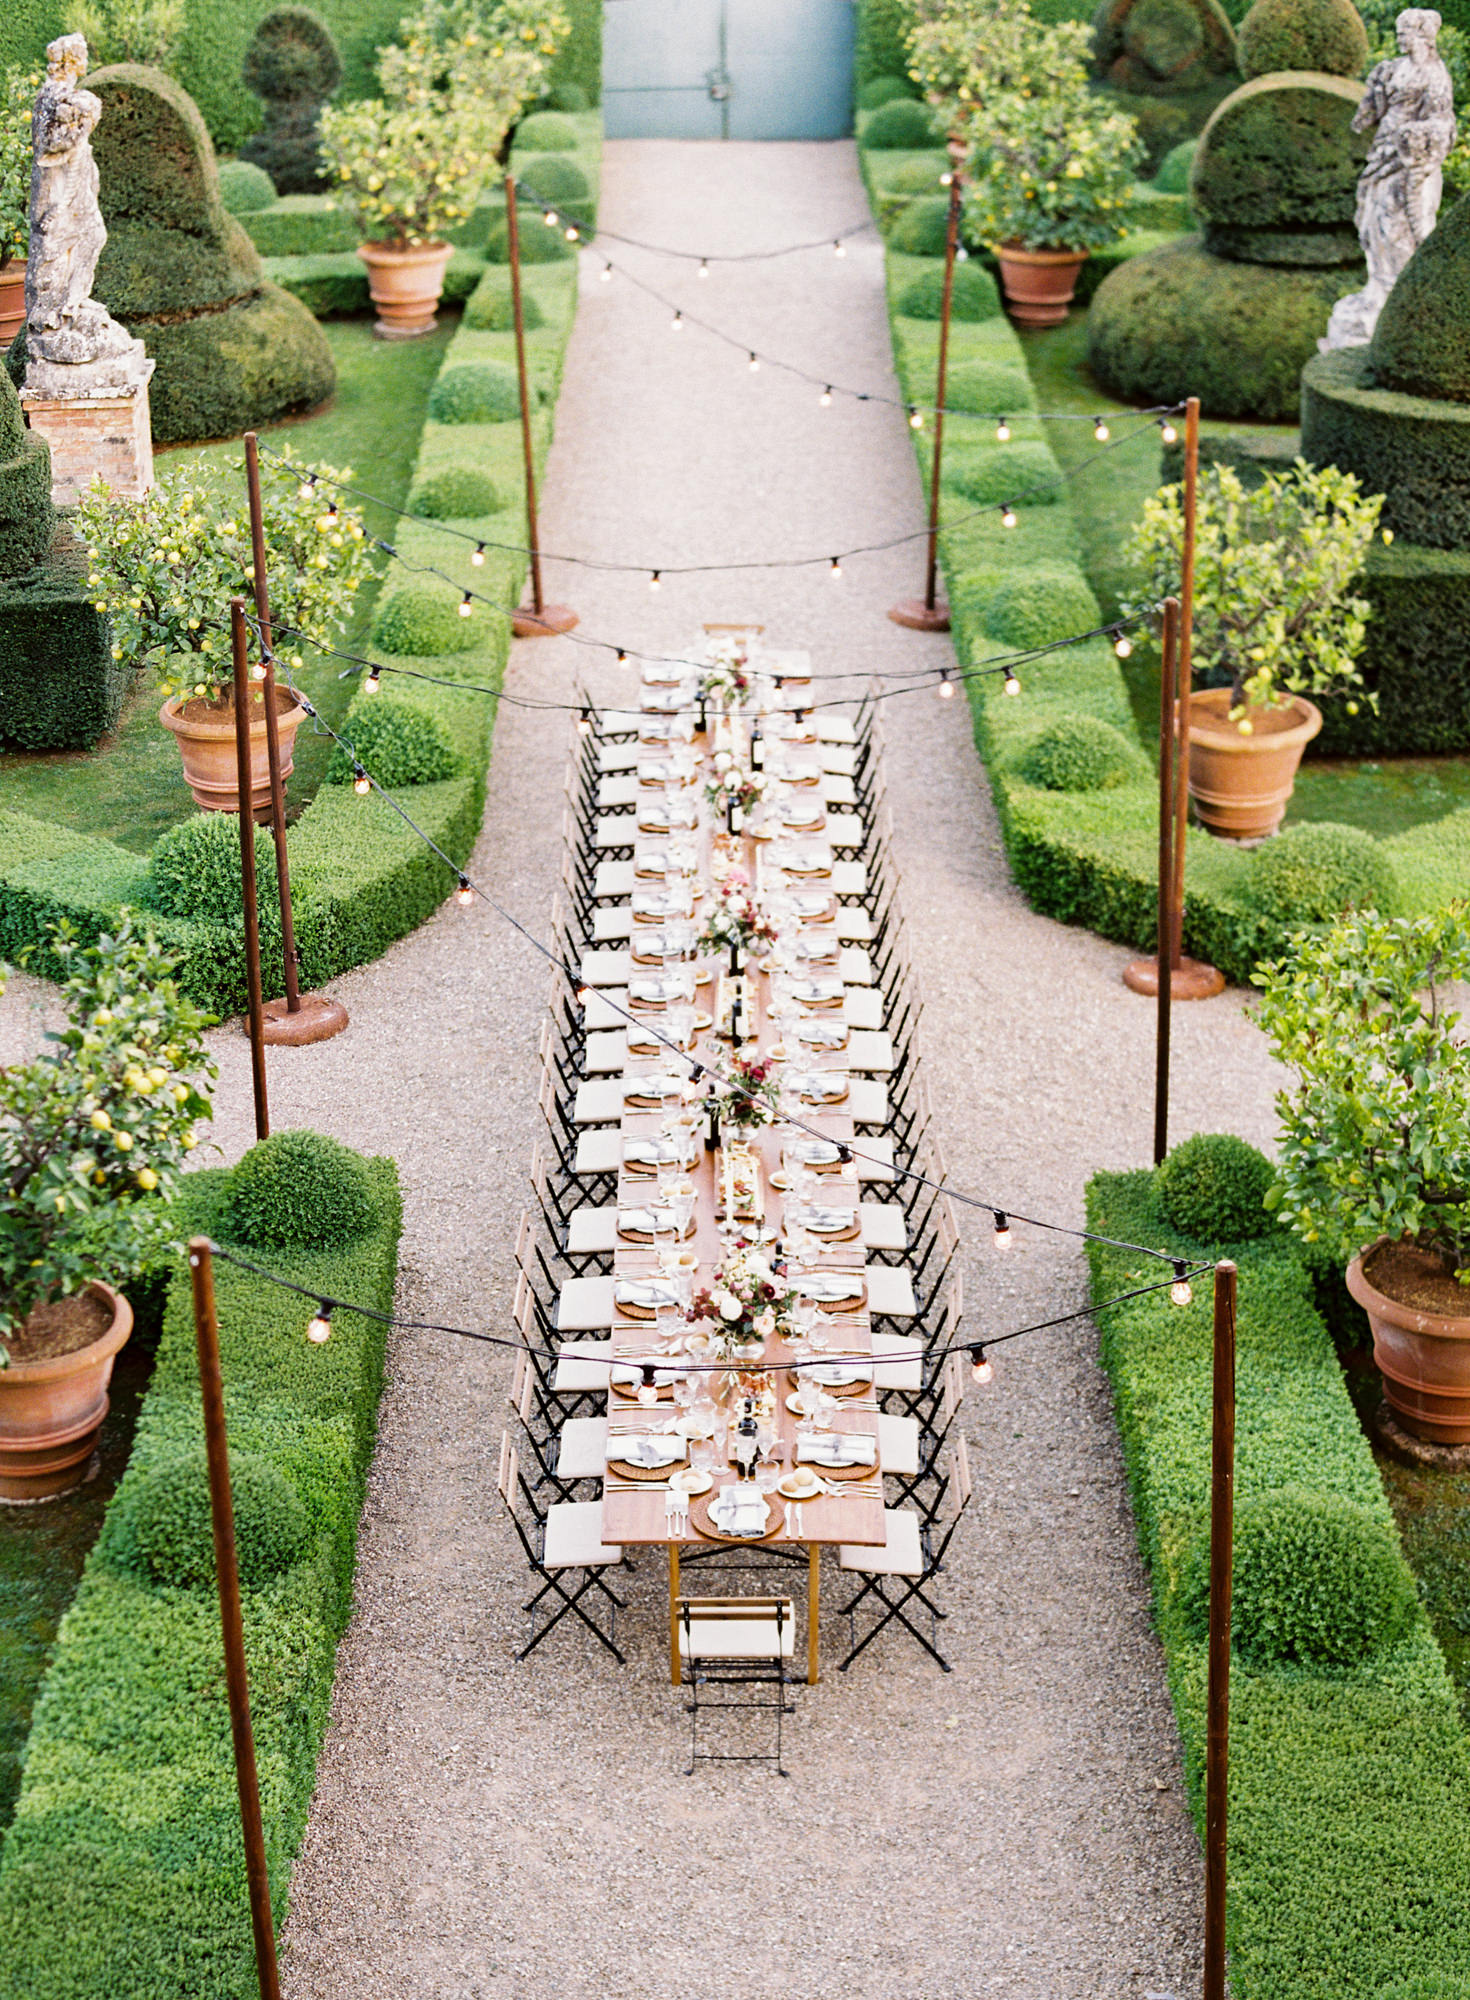 wedding banquet table for 30 in topiary garden Jen Huang Los Angeles wedding photographer.